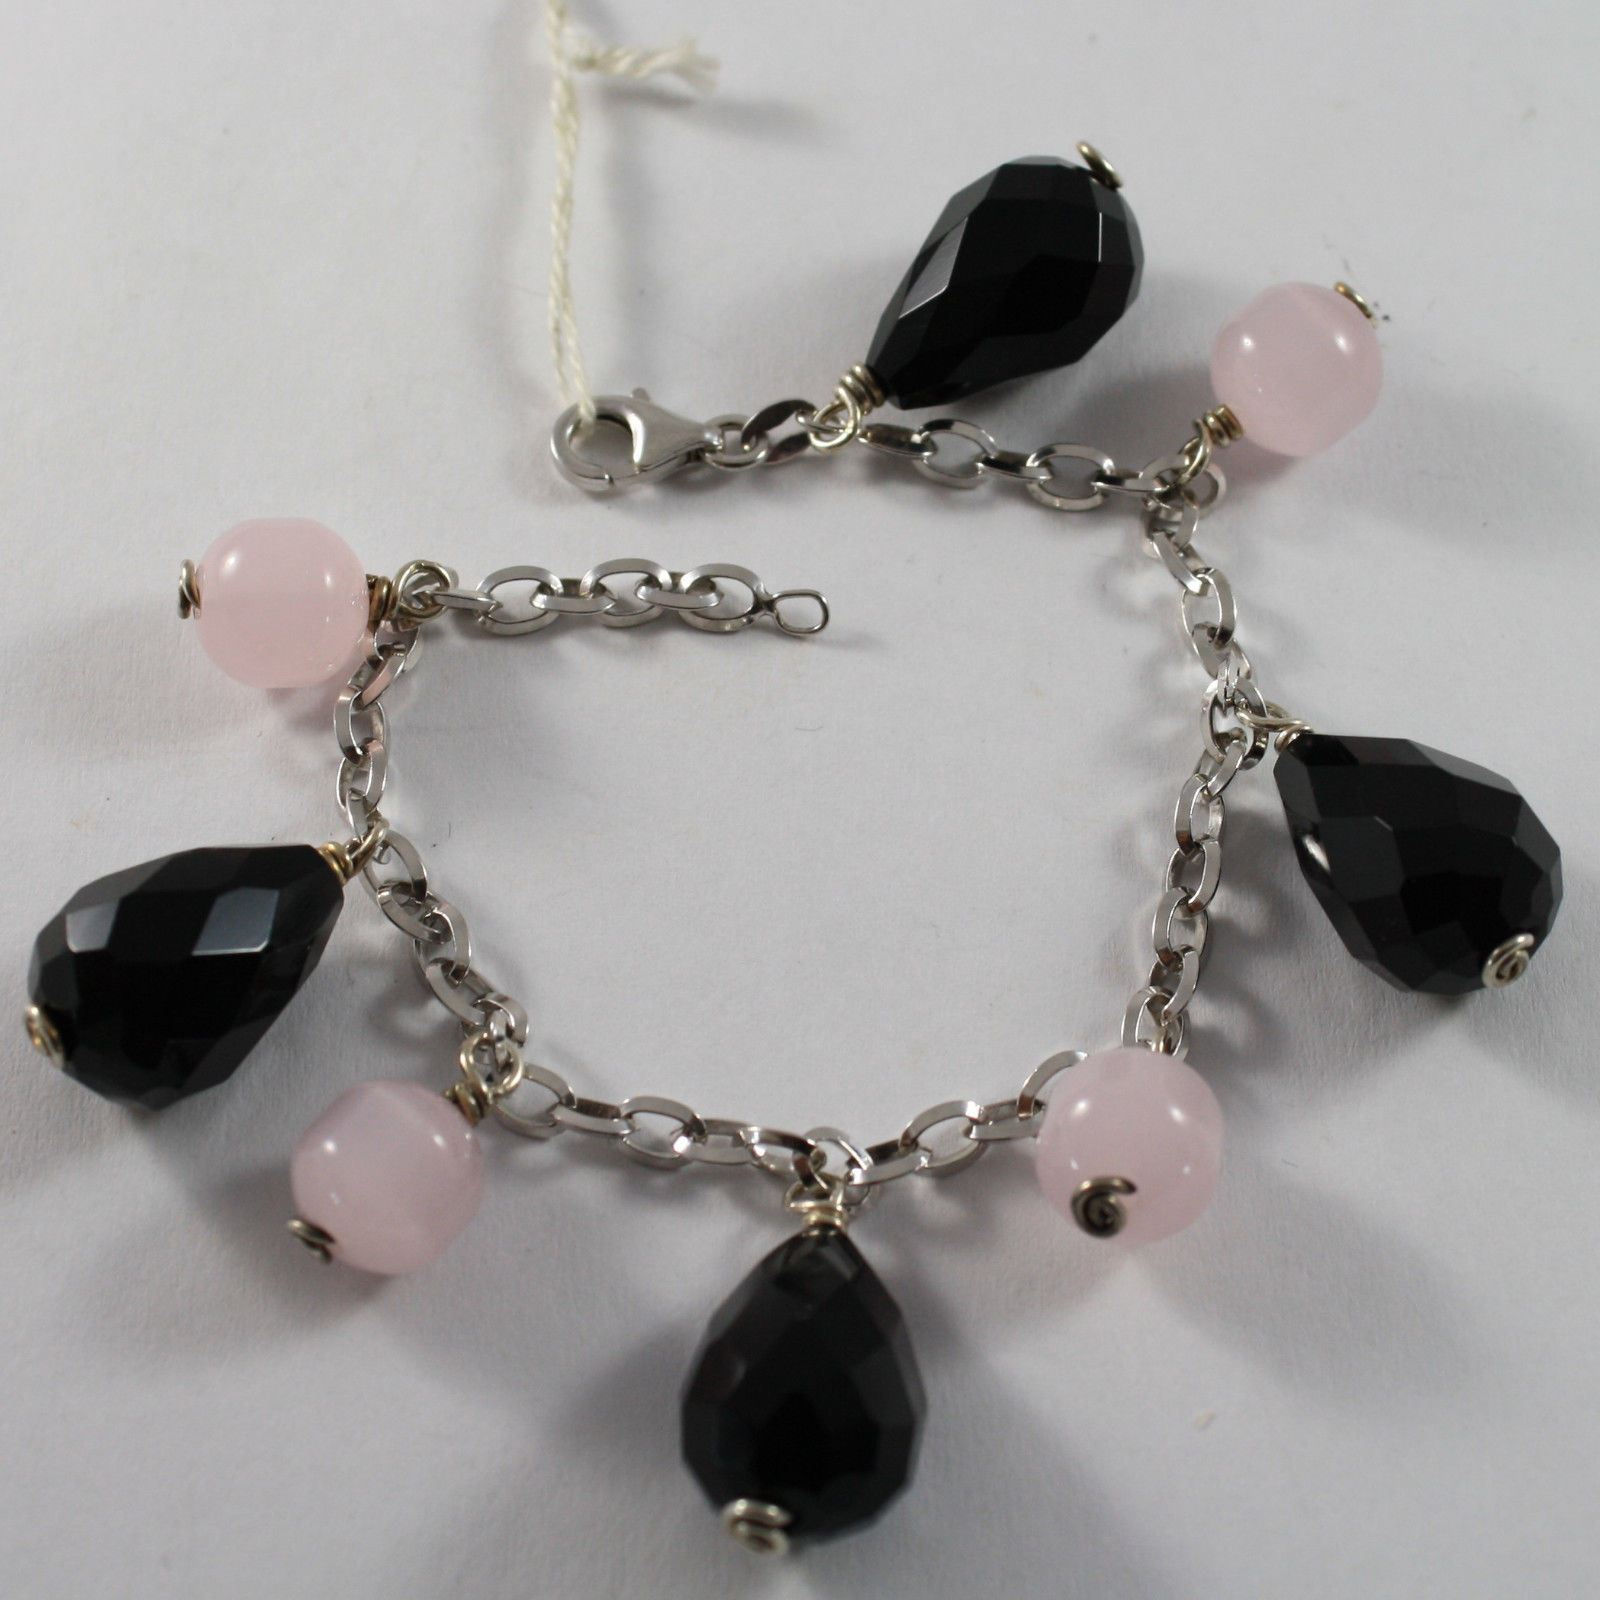 .925 RHODIUM SILVER BRACELET WITH PINK CRISTAL AND DROPS OF BLACK ONYX